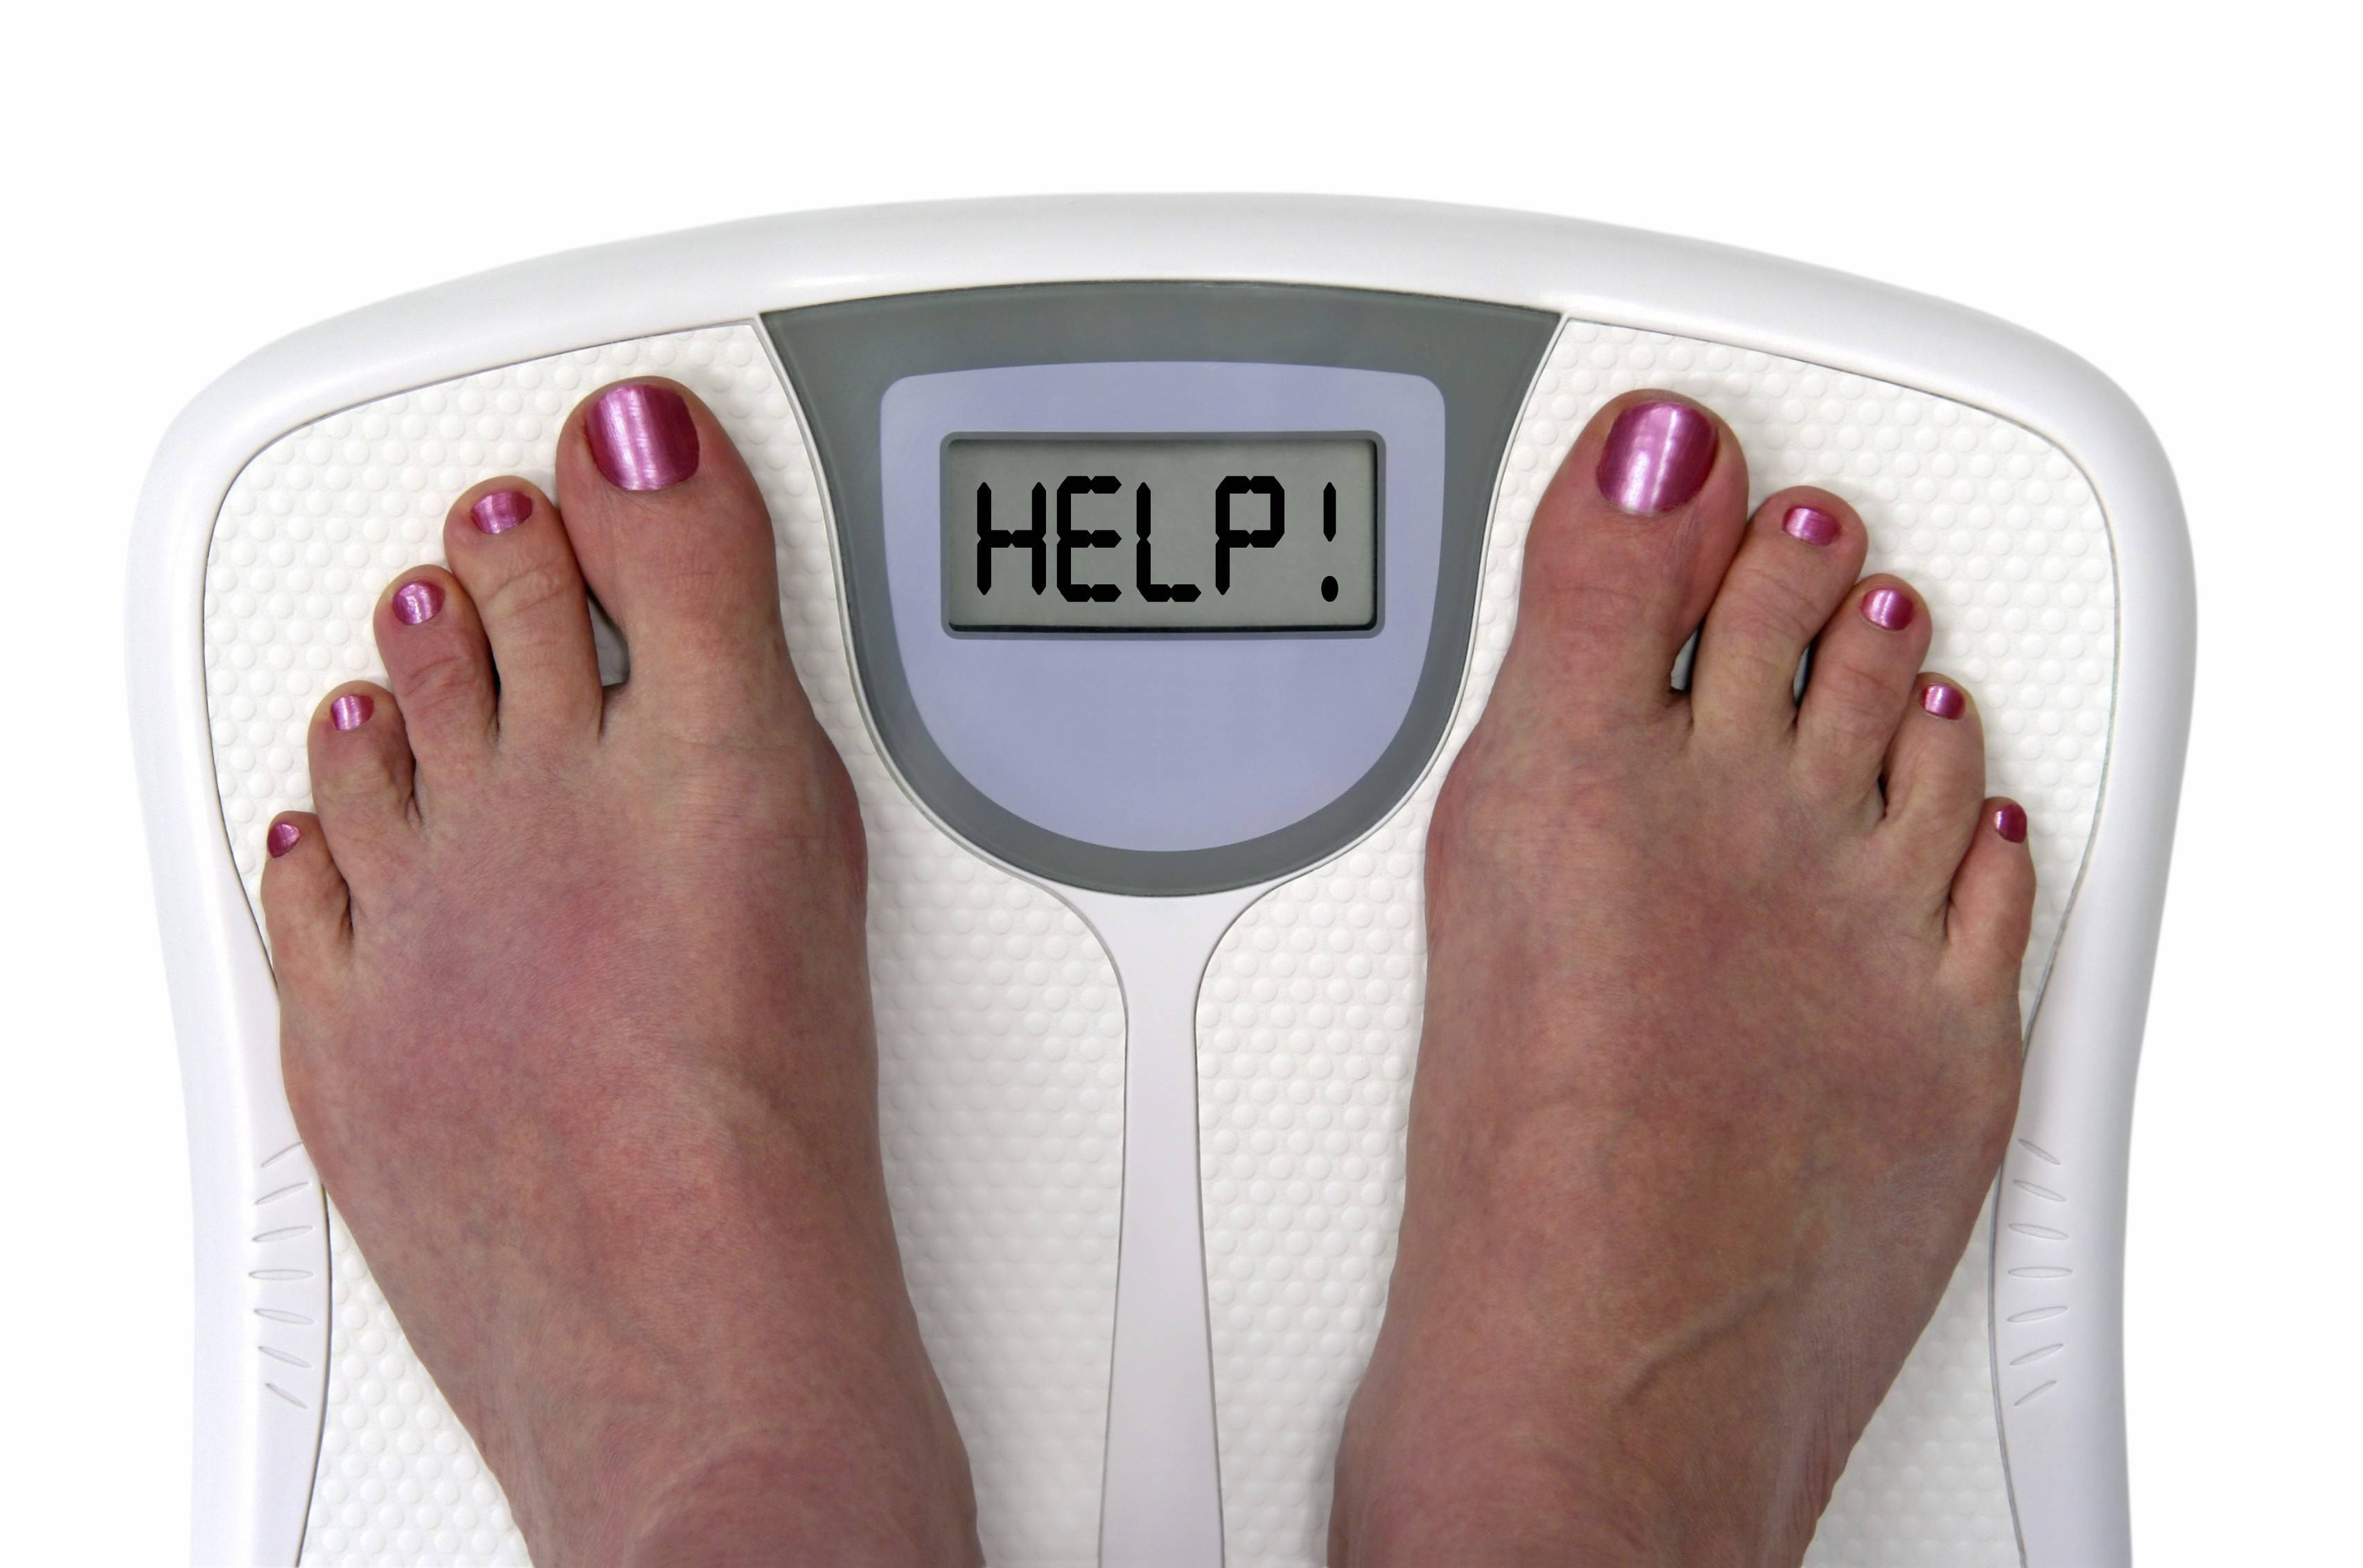 Some common mistakes can derail efforts to lose weight.